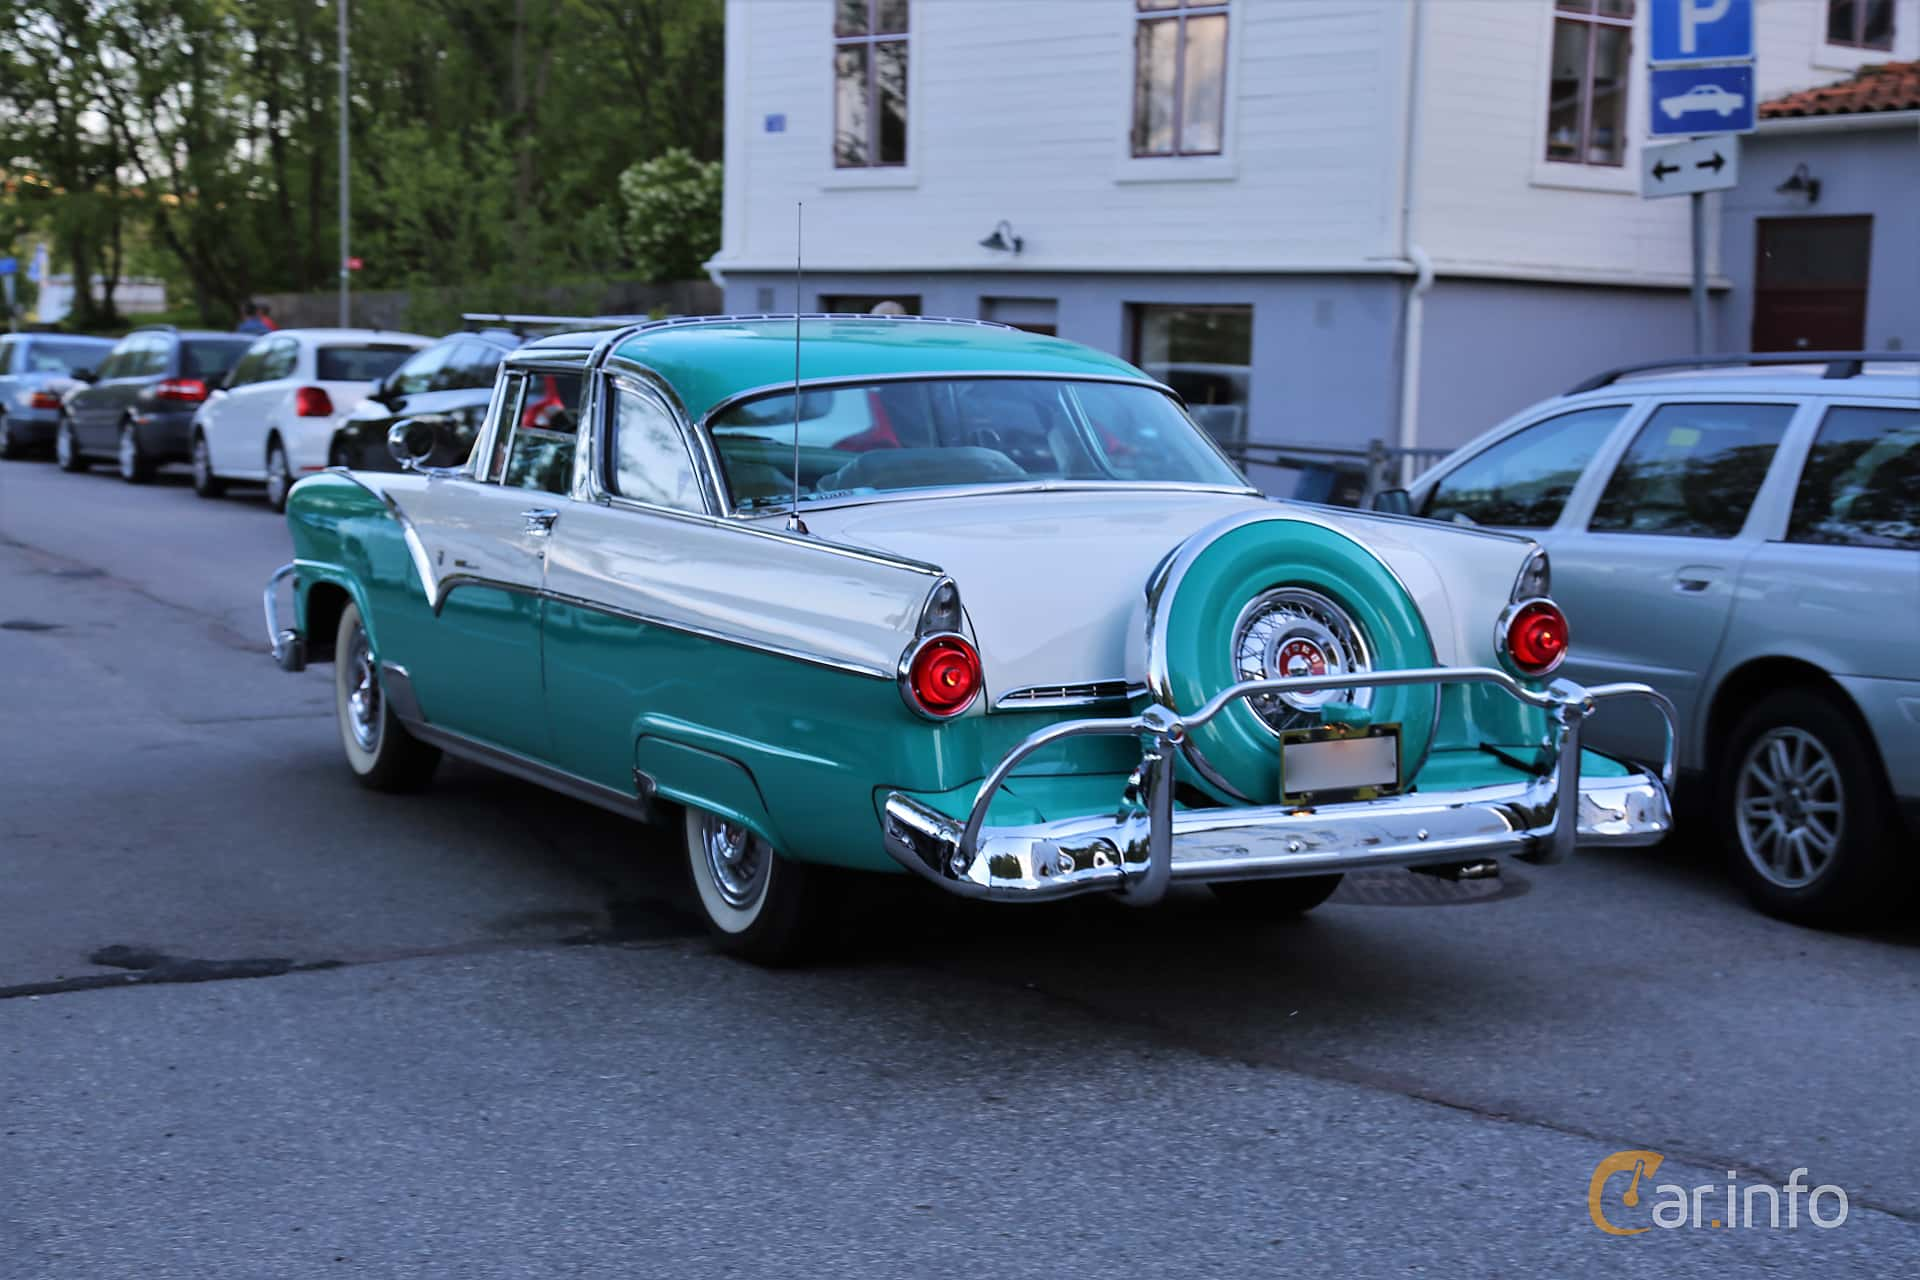 Ford Fairlane Crown Victoria Skyliner 4.5 V8 Automatic, 165hp, 1955